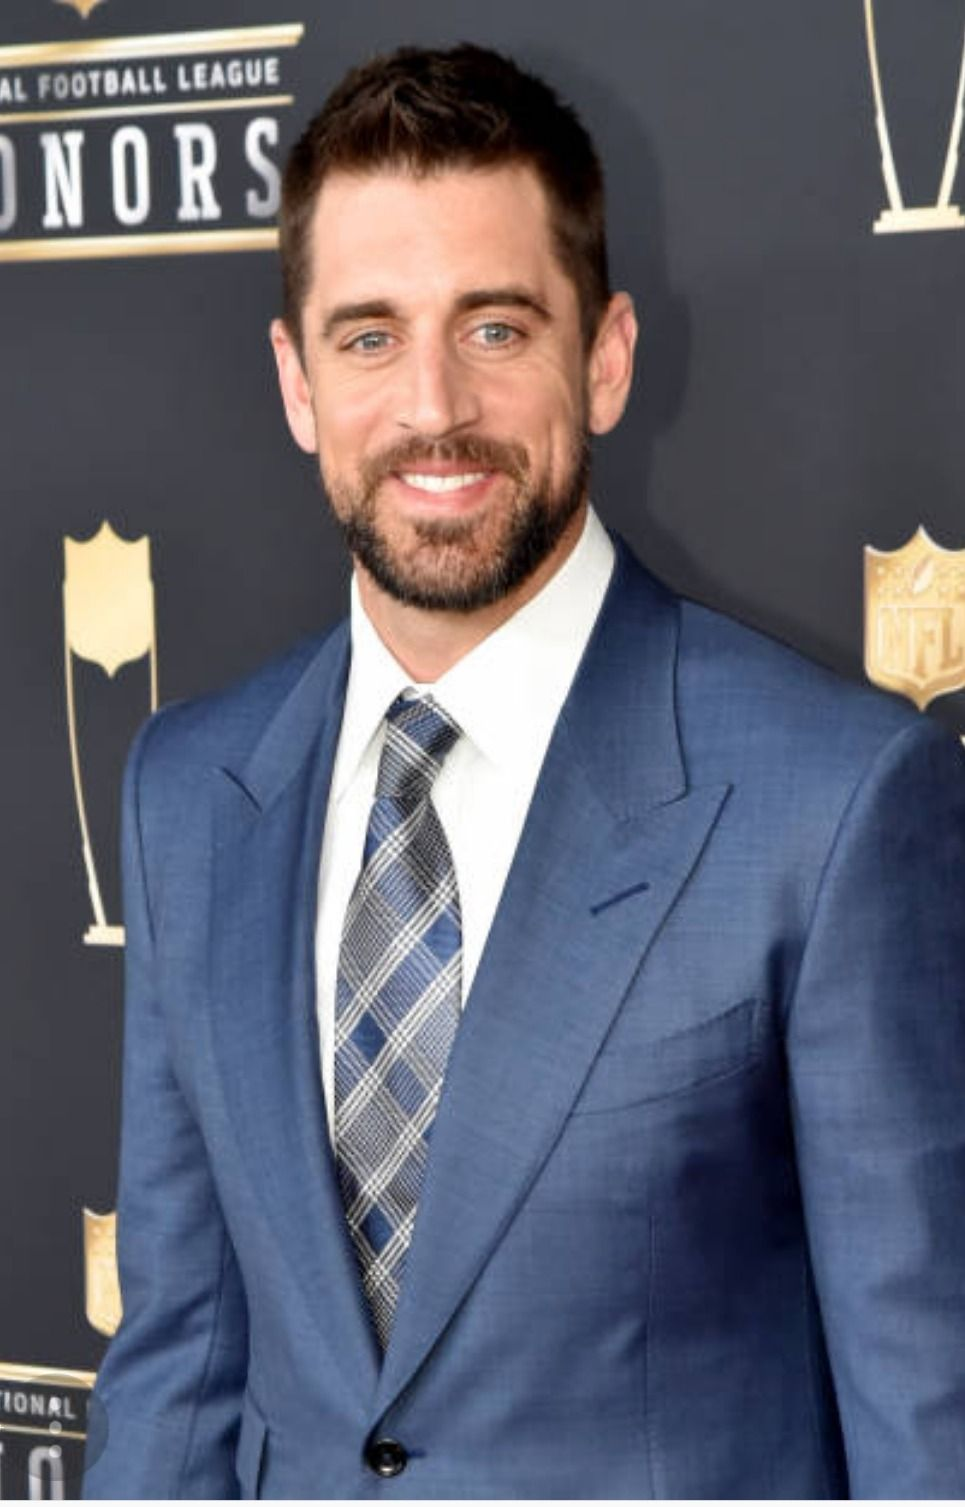 Rodgers At Nfl Honors 2018 Aaron Rodgers Nfl Aaron